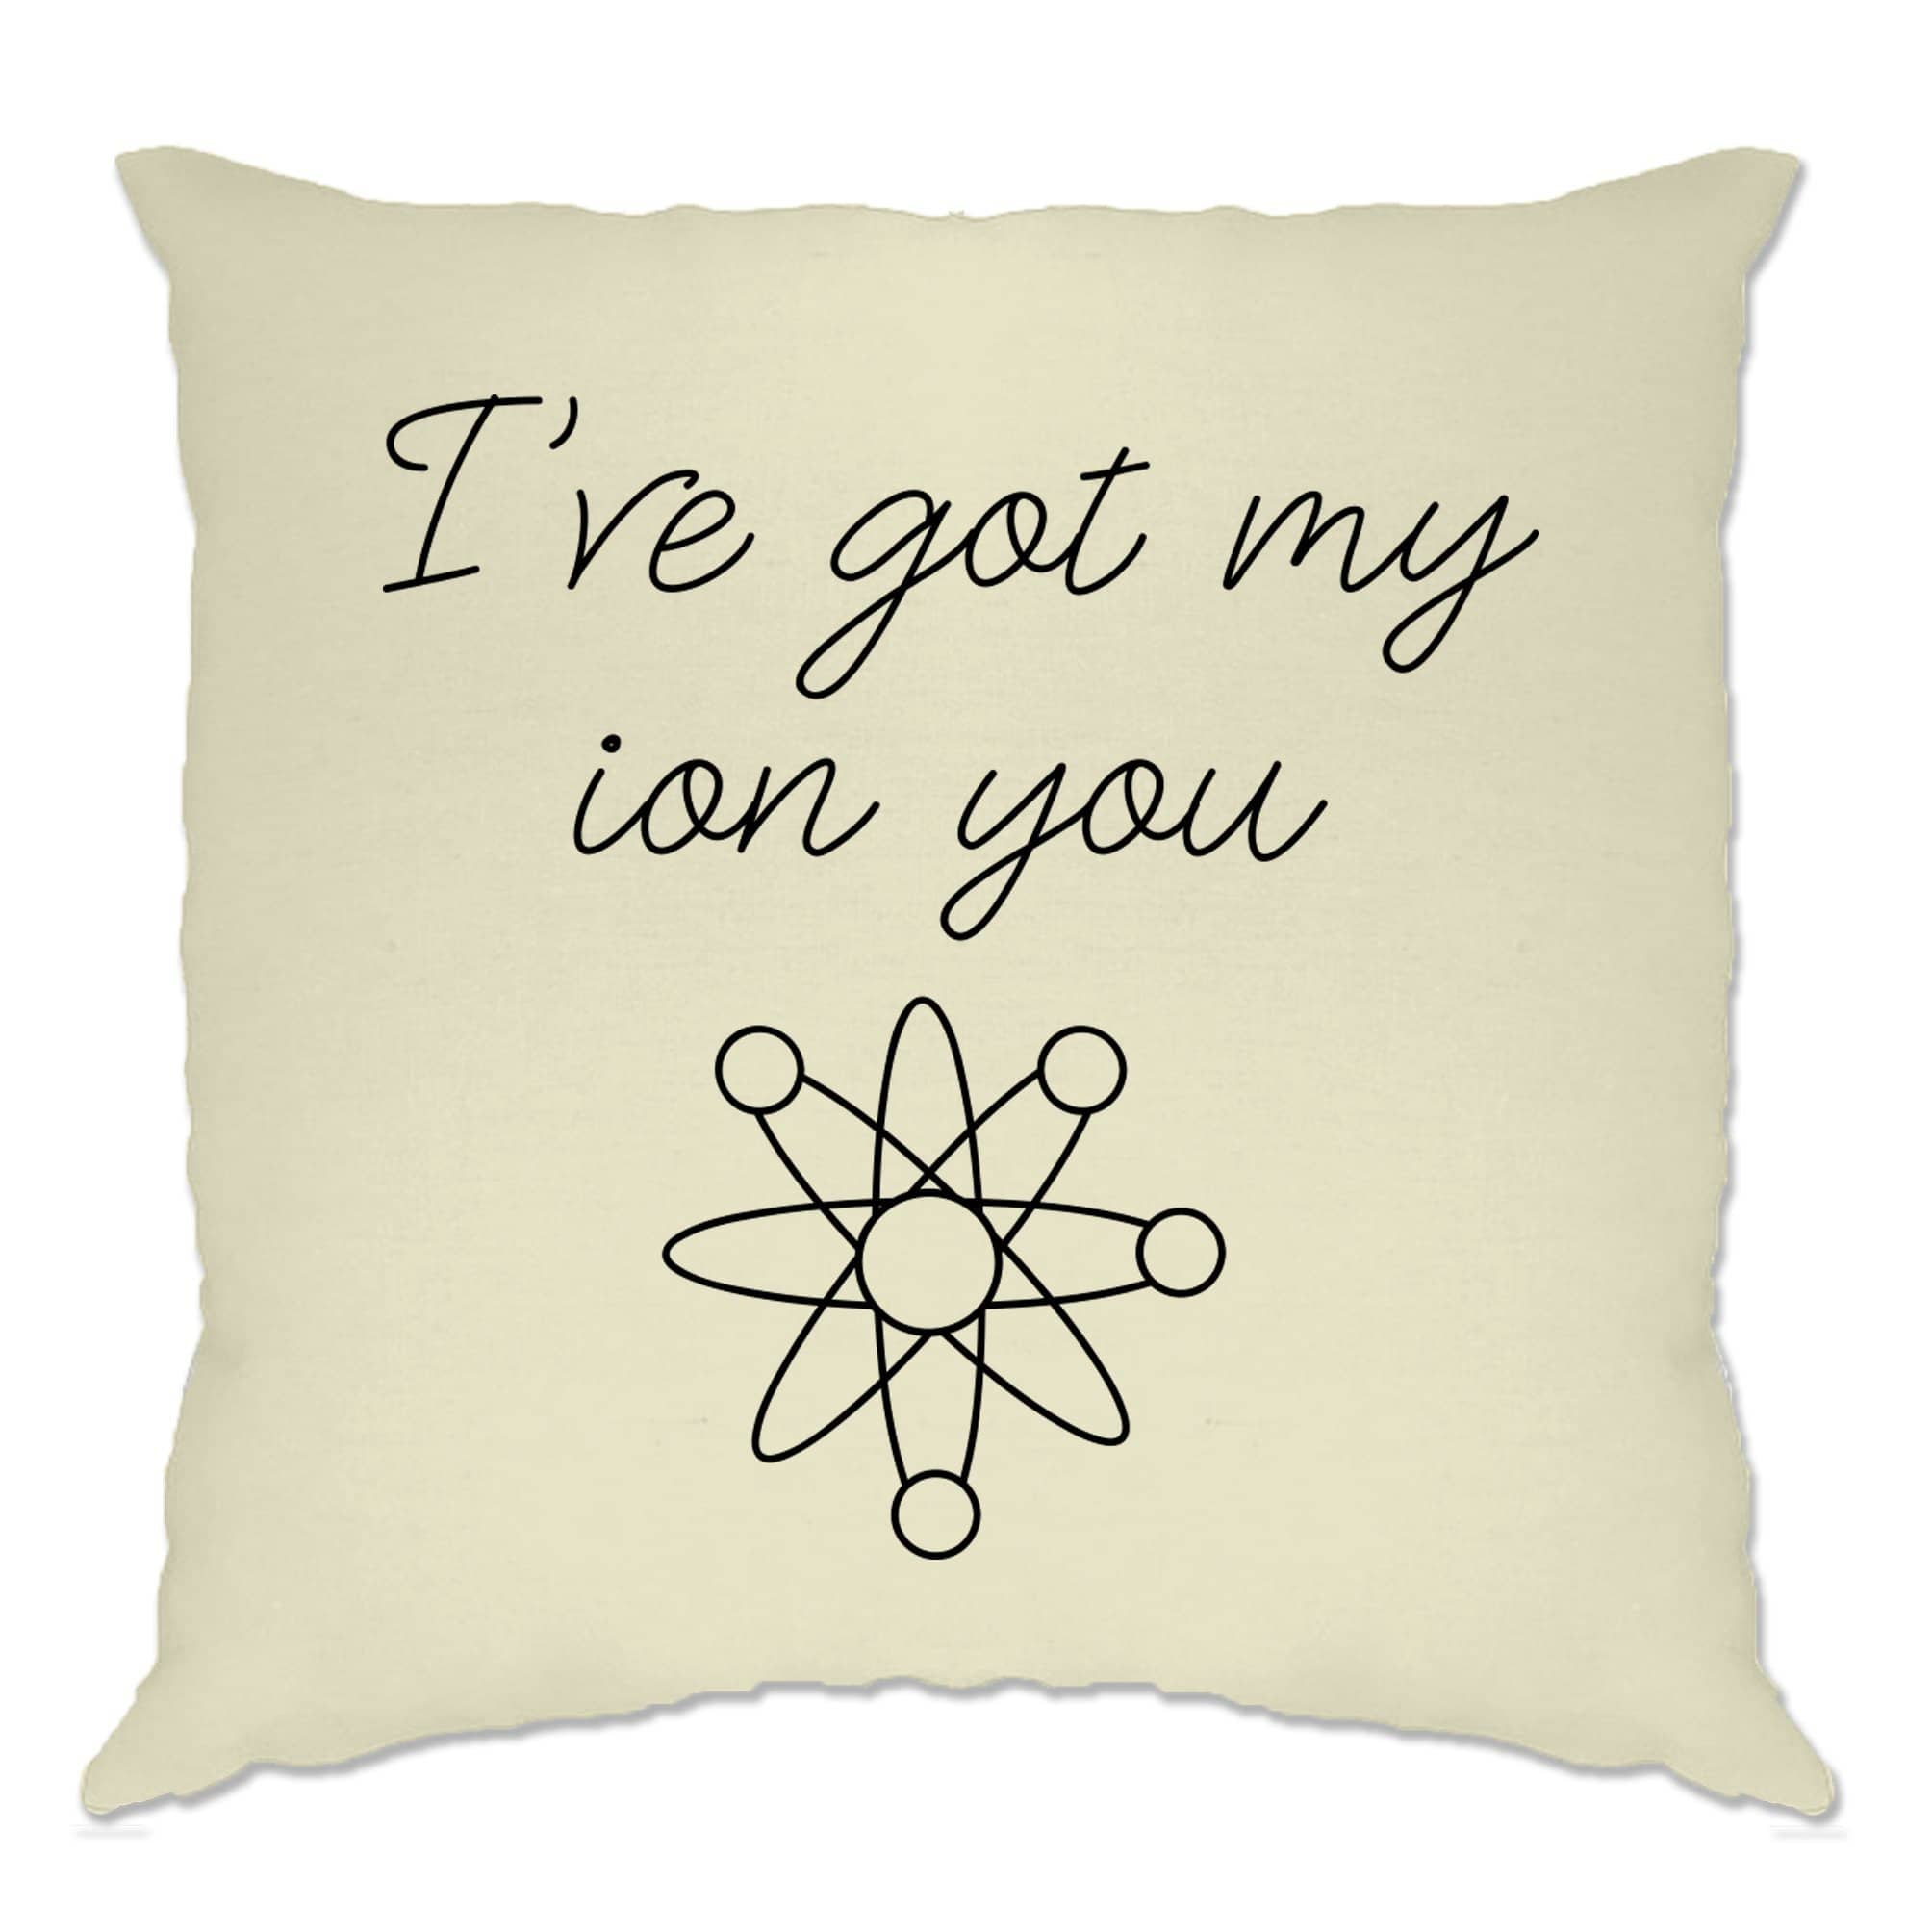 Novelty Nerdy Cushion Cover I've Got My Ion You Science Pun